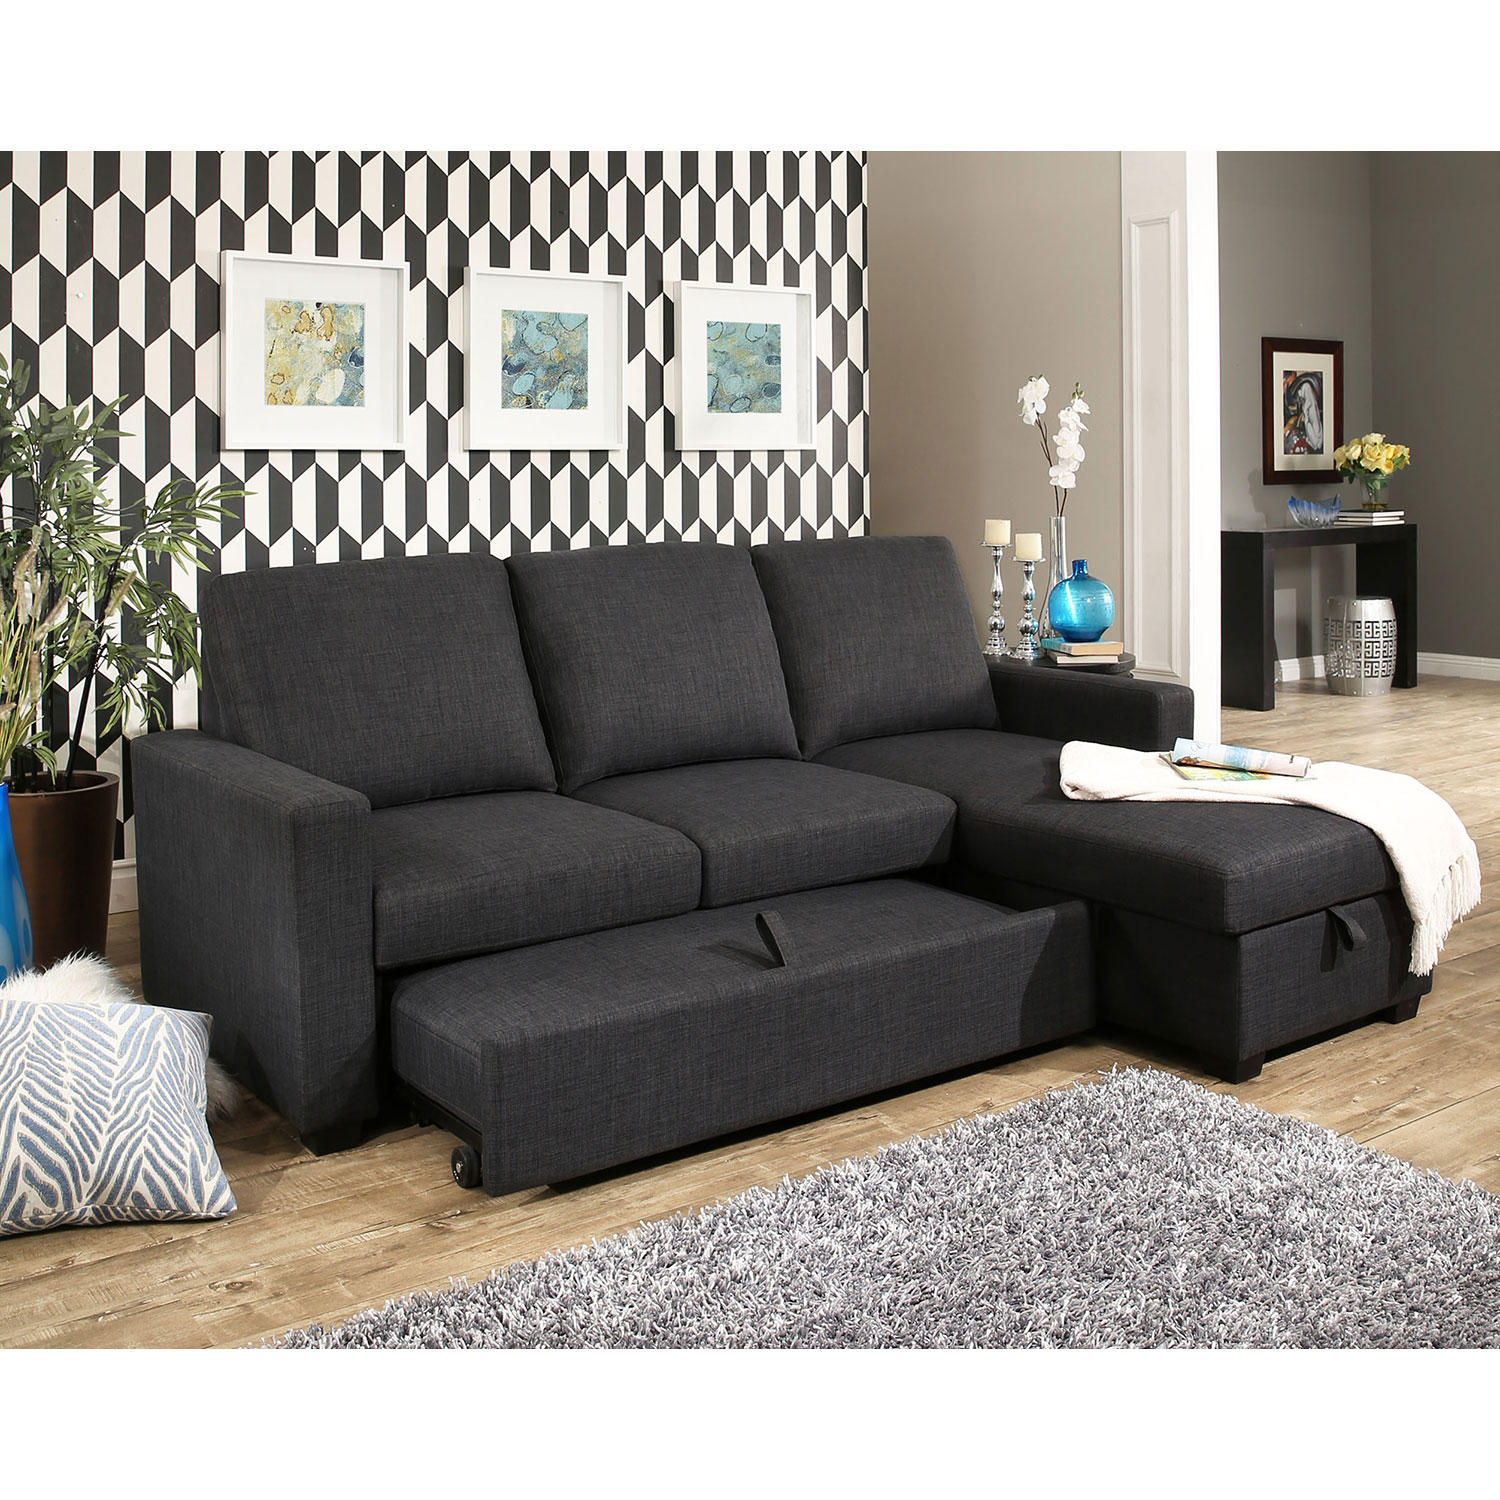 Abbyson Living Hudson Fabric Reversible Storage Sectional with Pullout Bed